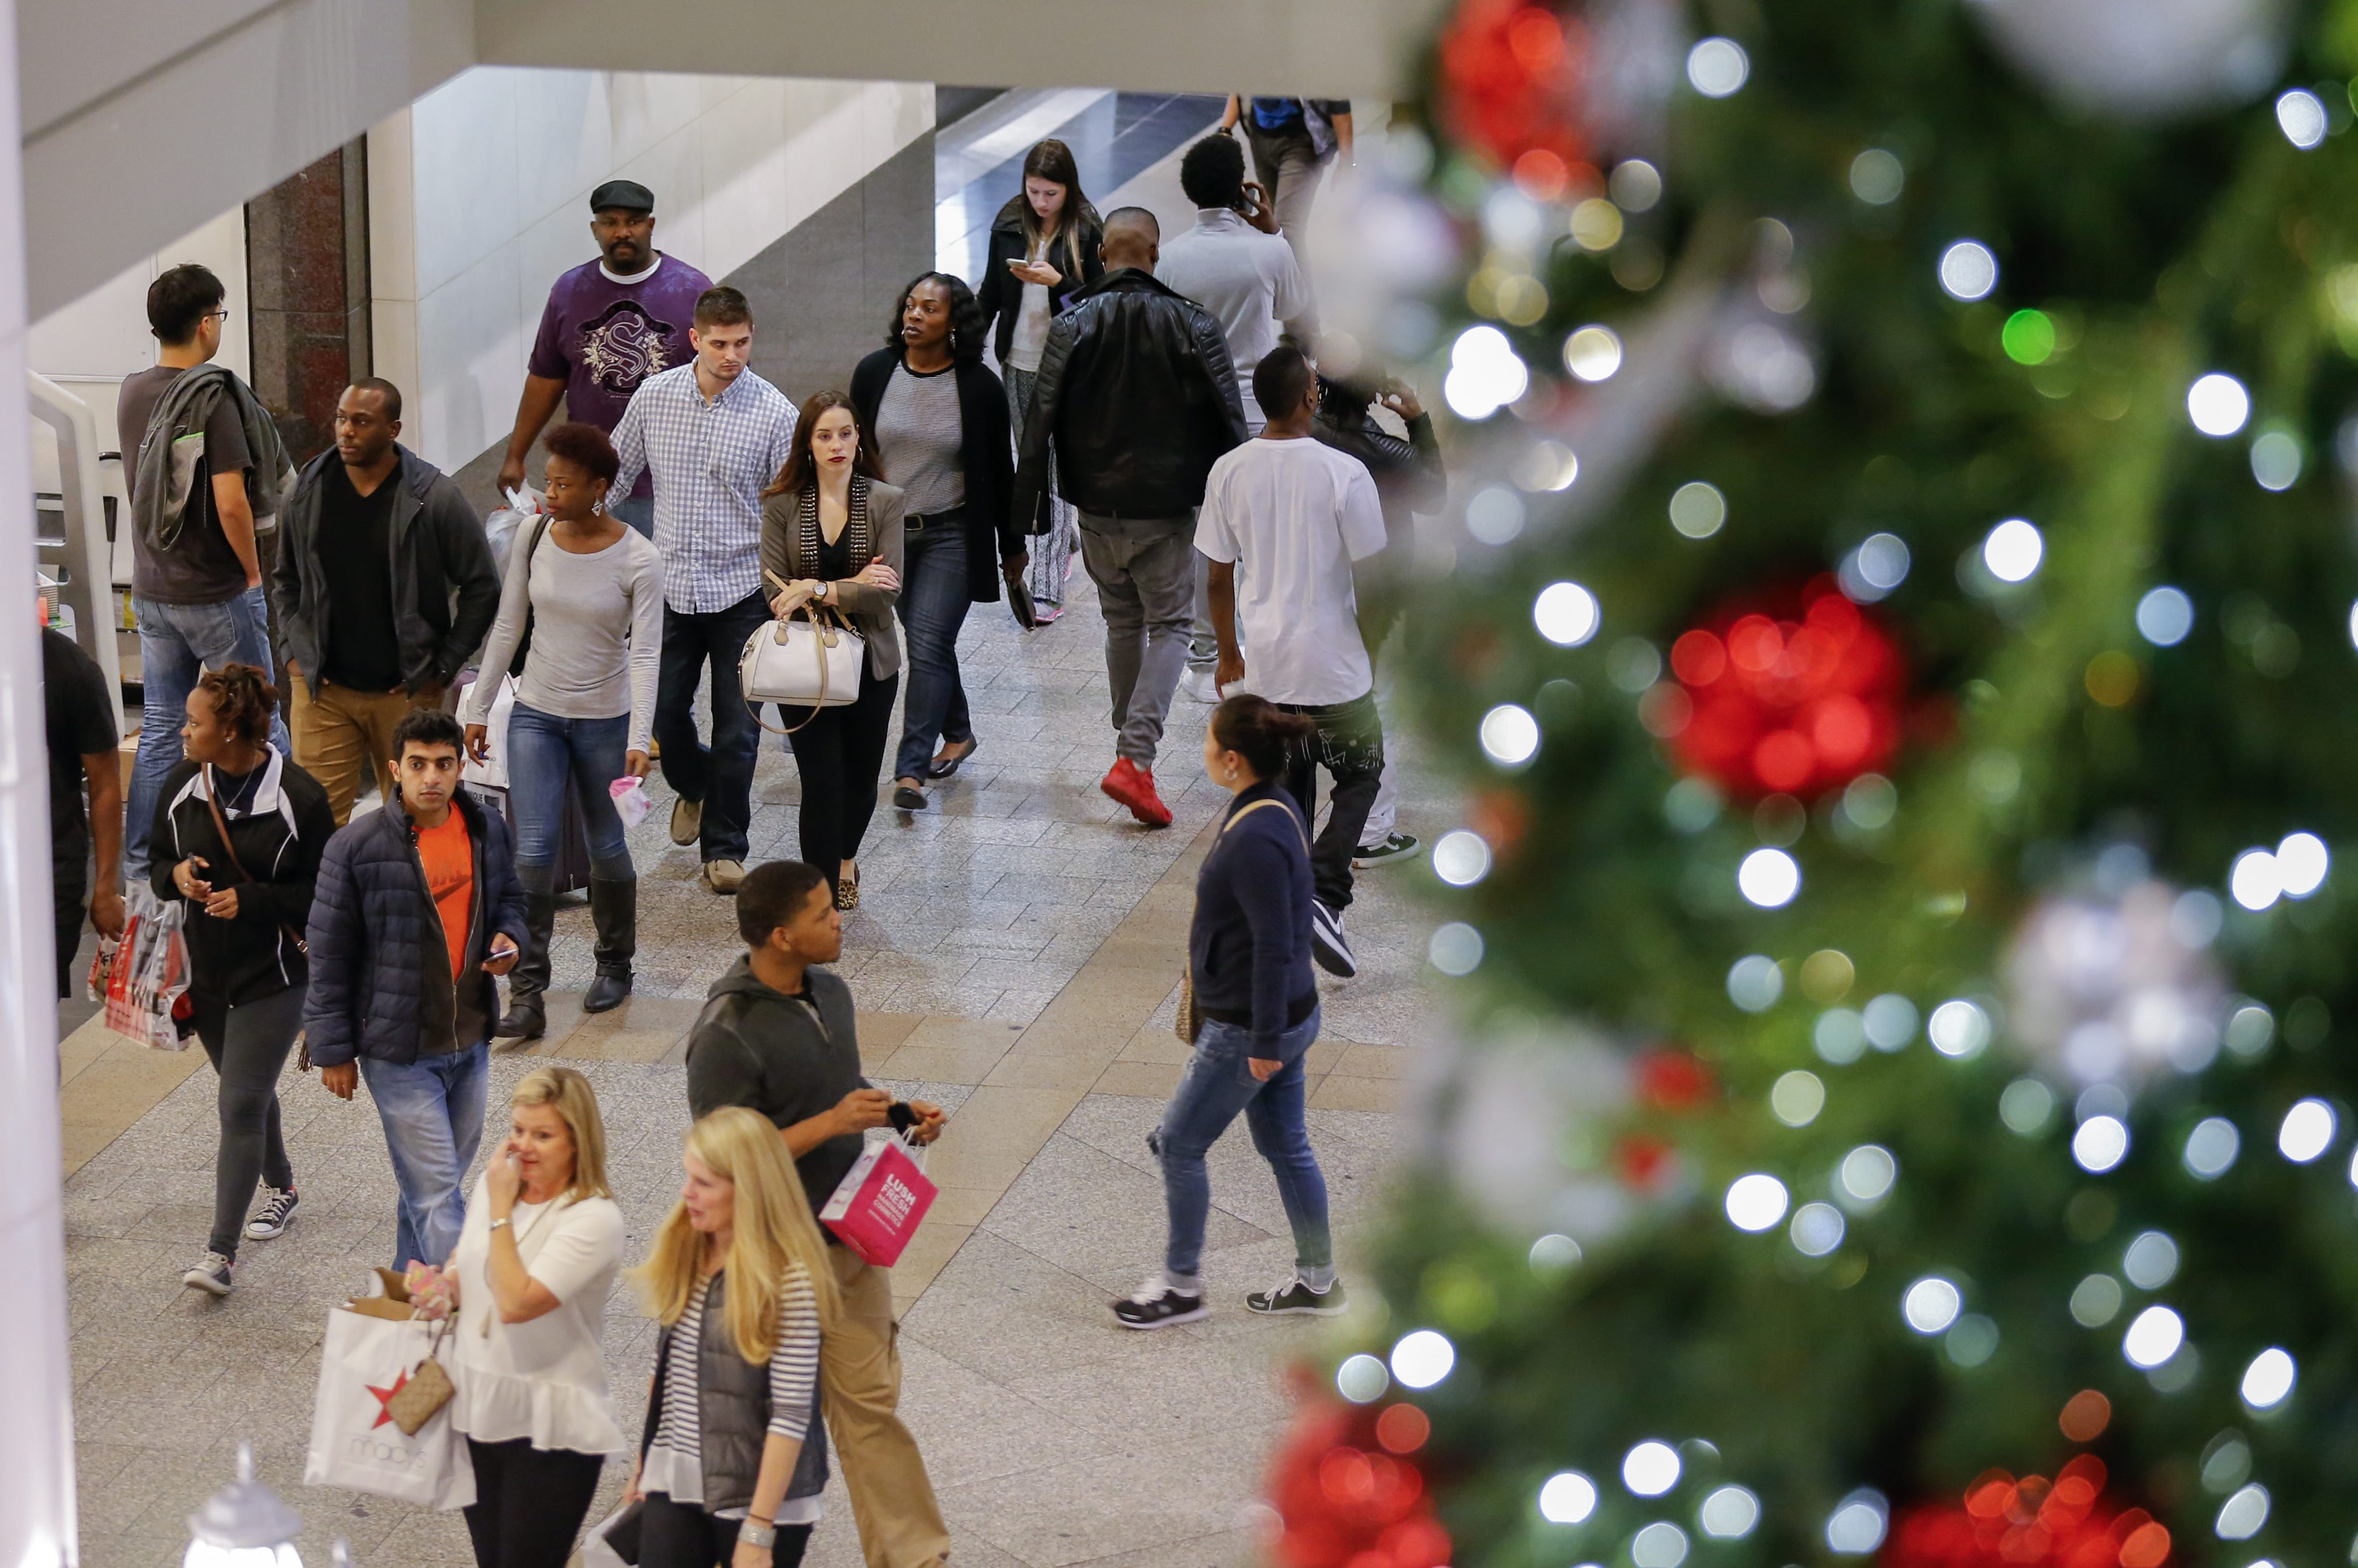 Holiday shoppers on Super Saturday